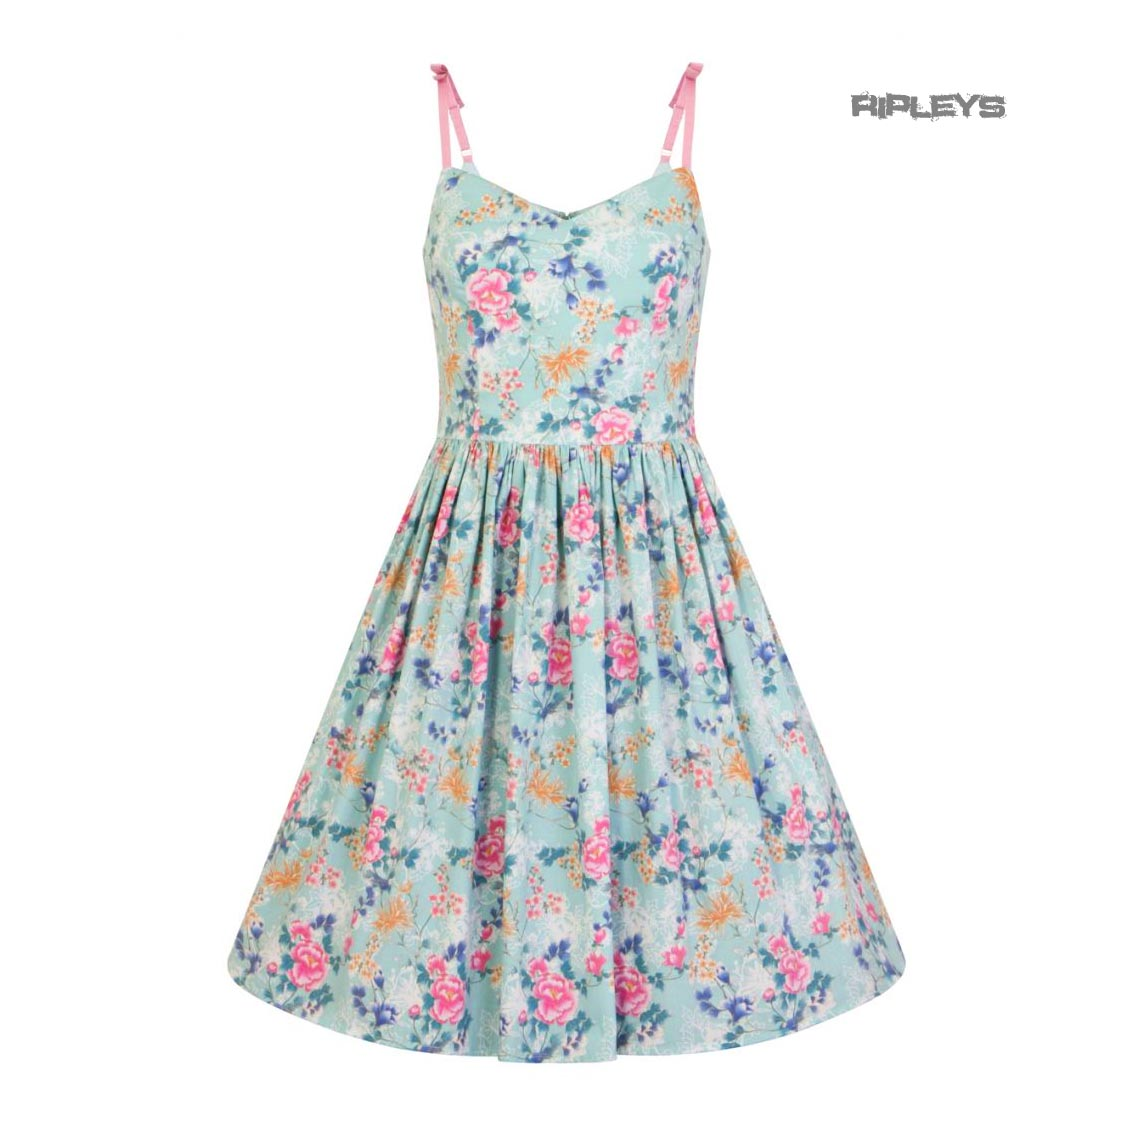 Hell-Bunny-50s-Mid-Length-Dress-Vintage-Blue-Pink-SAKURA-Flowers-Roses-All-Sizes thumbnail 7